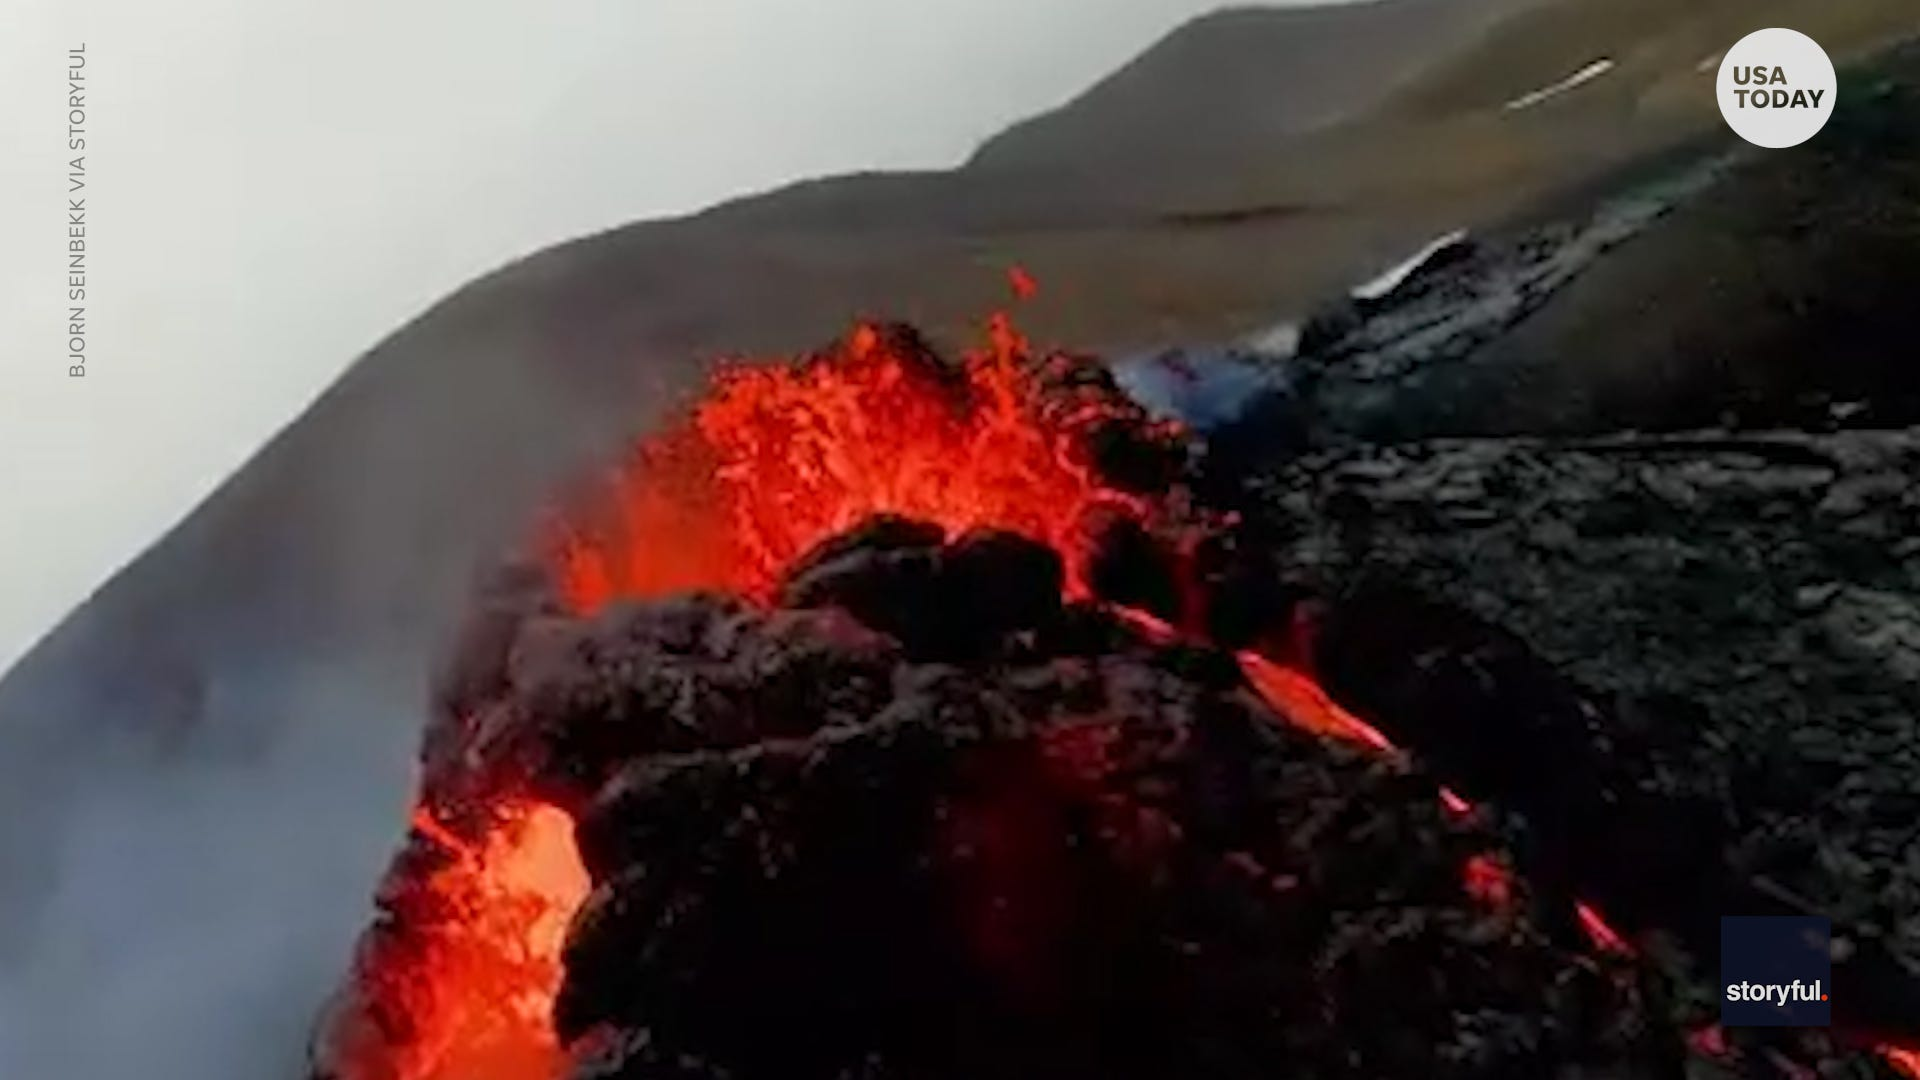 The Fagradalsfjall volcano on the Reykjanes Peninsula in Iceland unexpectedly erupted